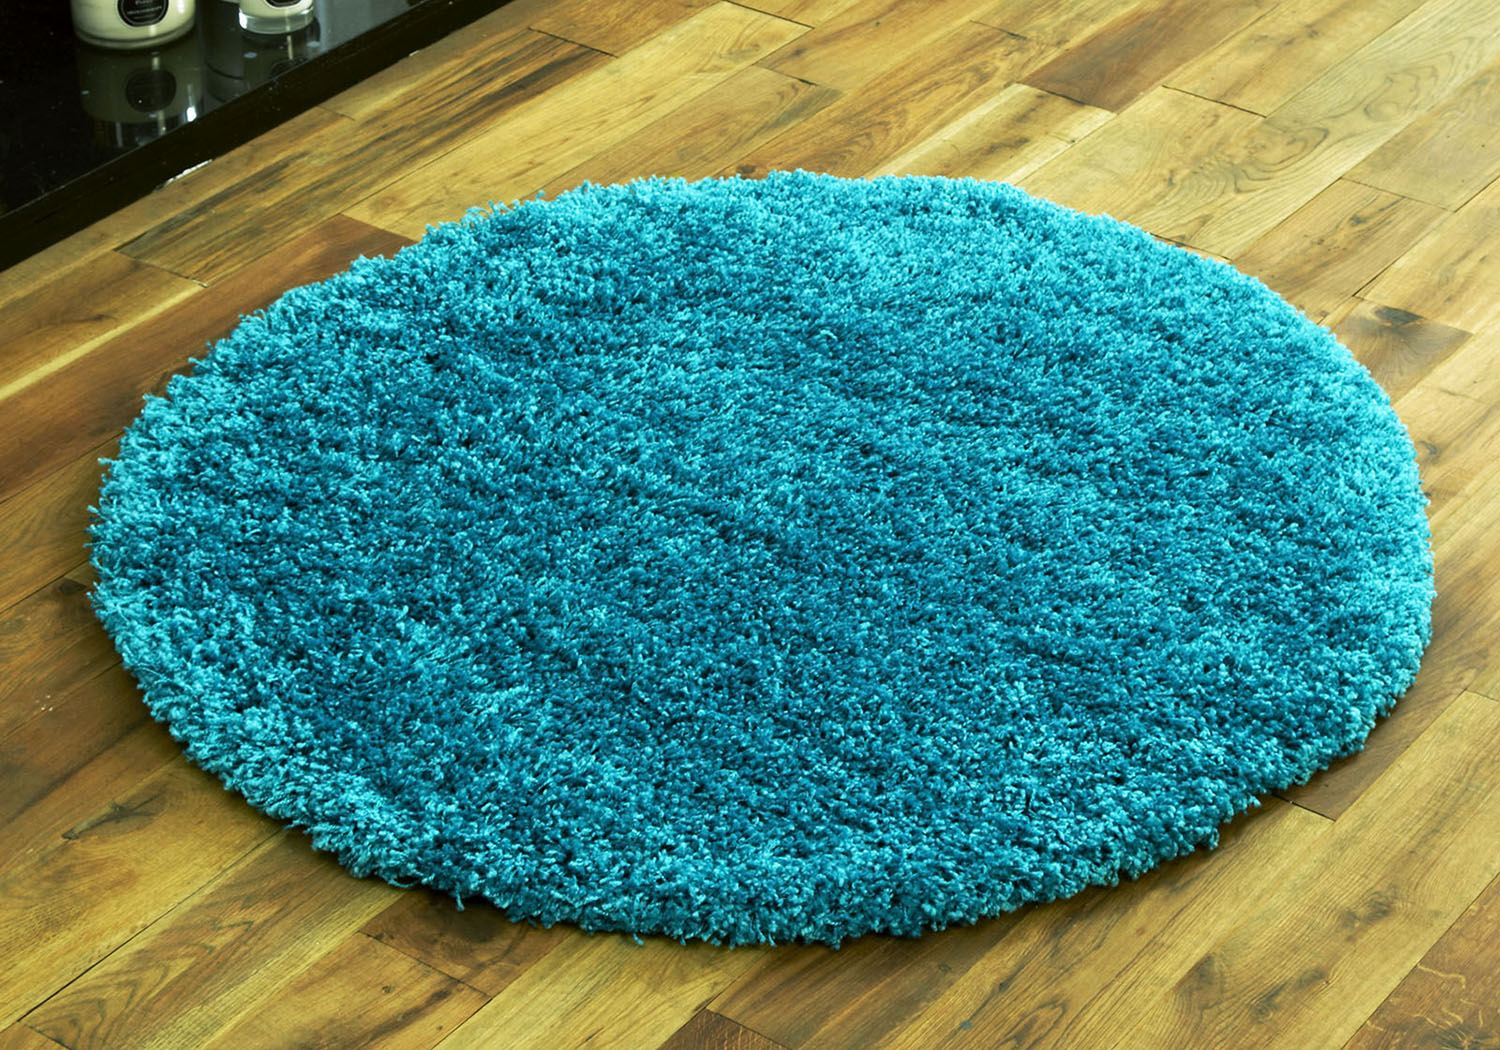 Small Quality Modern Round Circle 110cm Thick 5cm High Turquoise Blue Shag Rug 5055747000979 Ebay